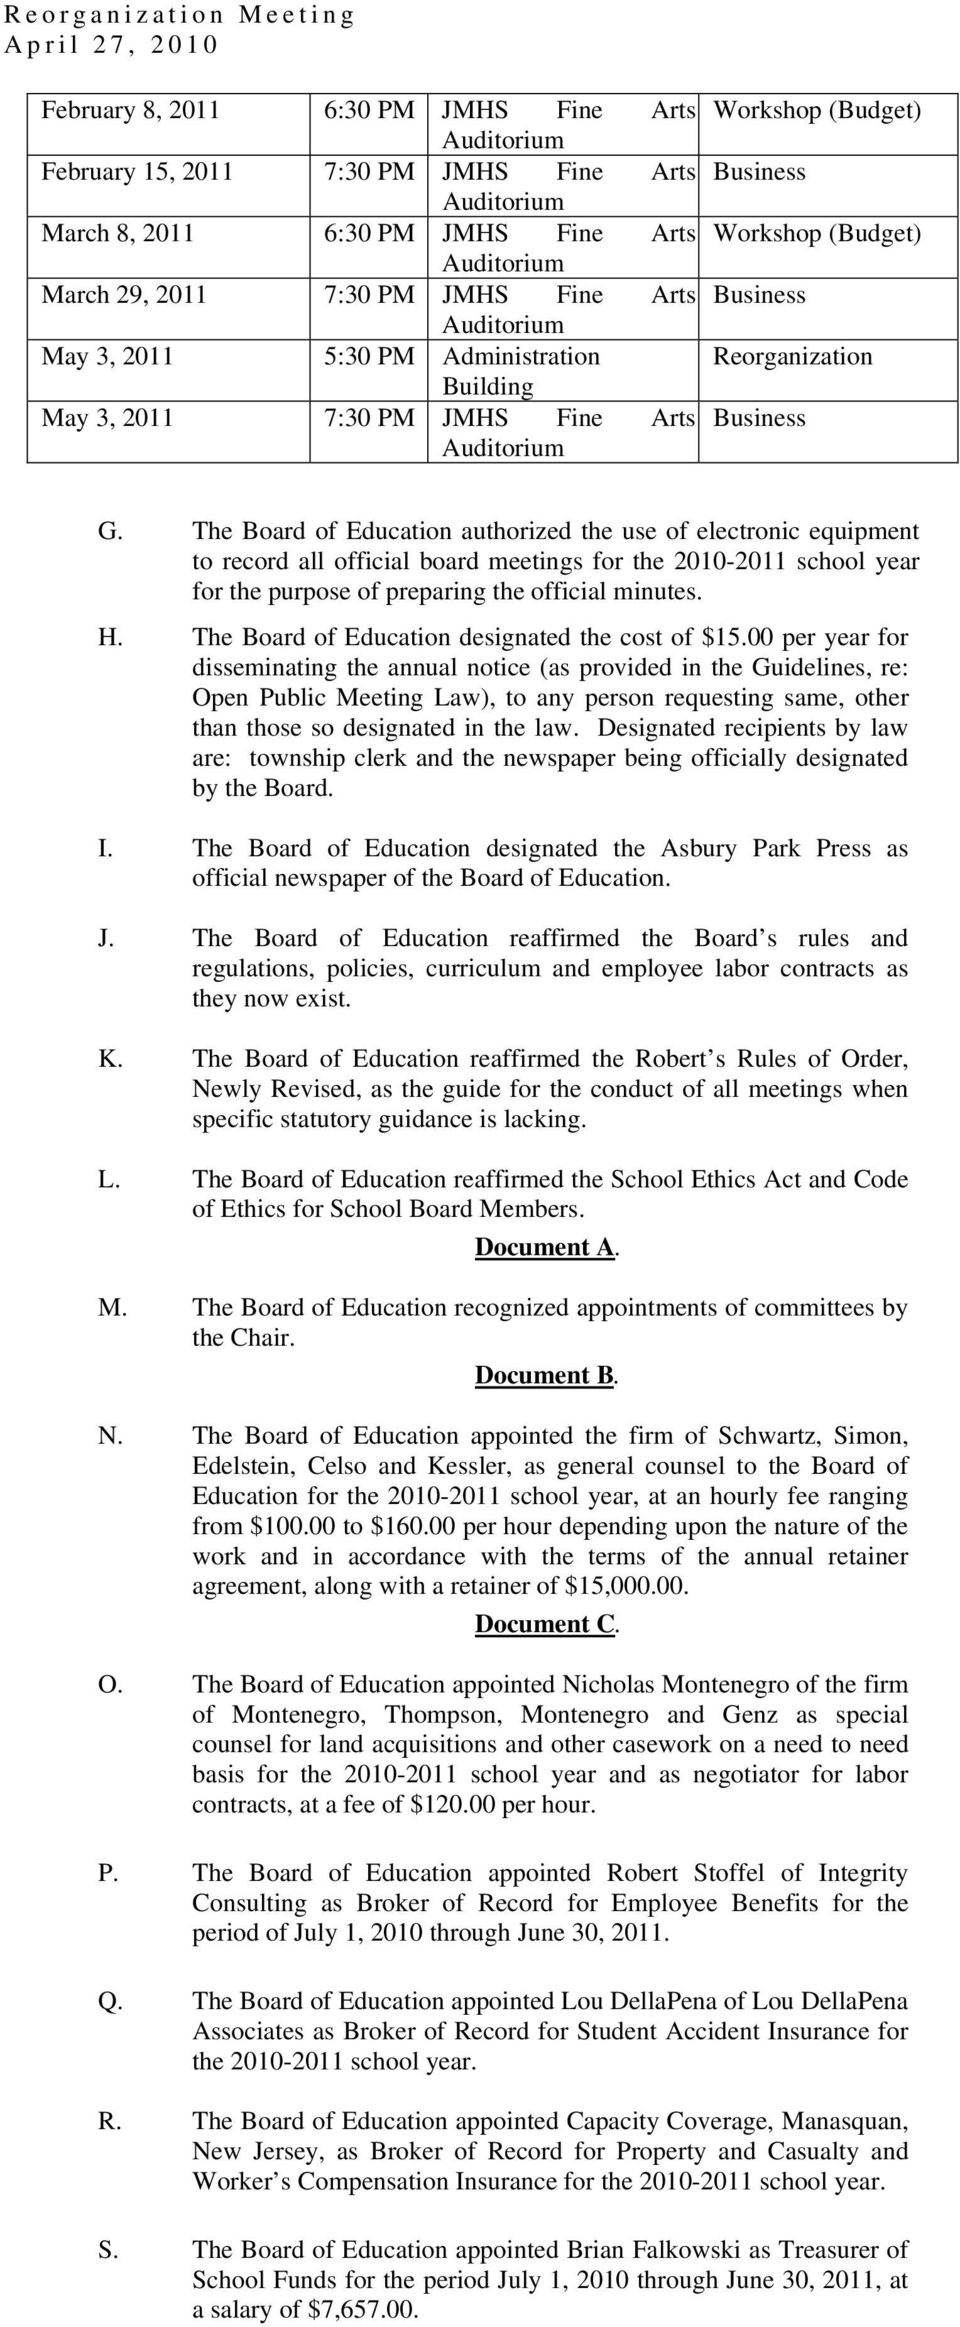 The Board of Education authorized the use of electronic equipment to record all official board meetings for the 2010-2011 school year for the purpose of preparing the official minutes. H.